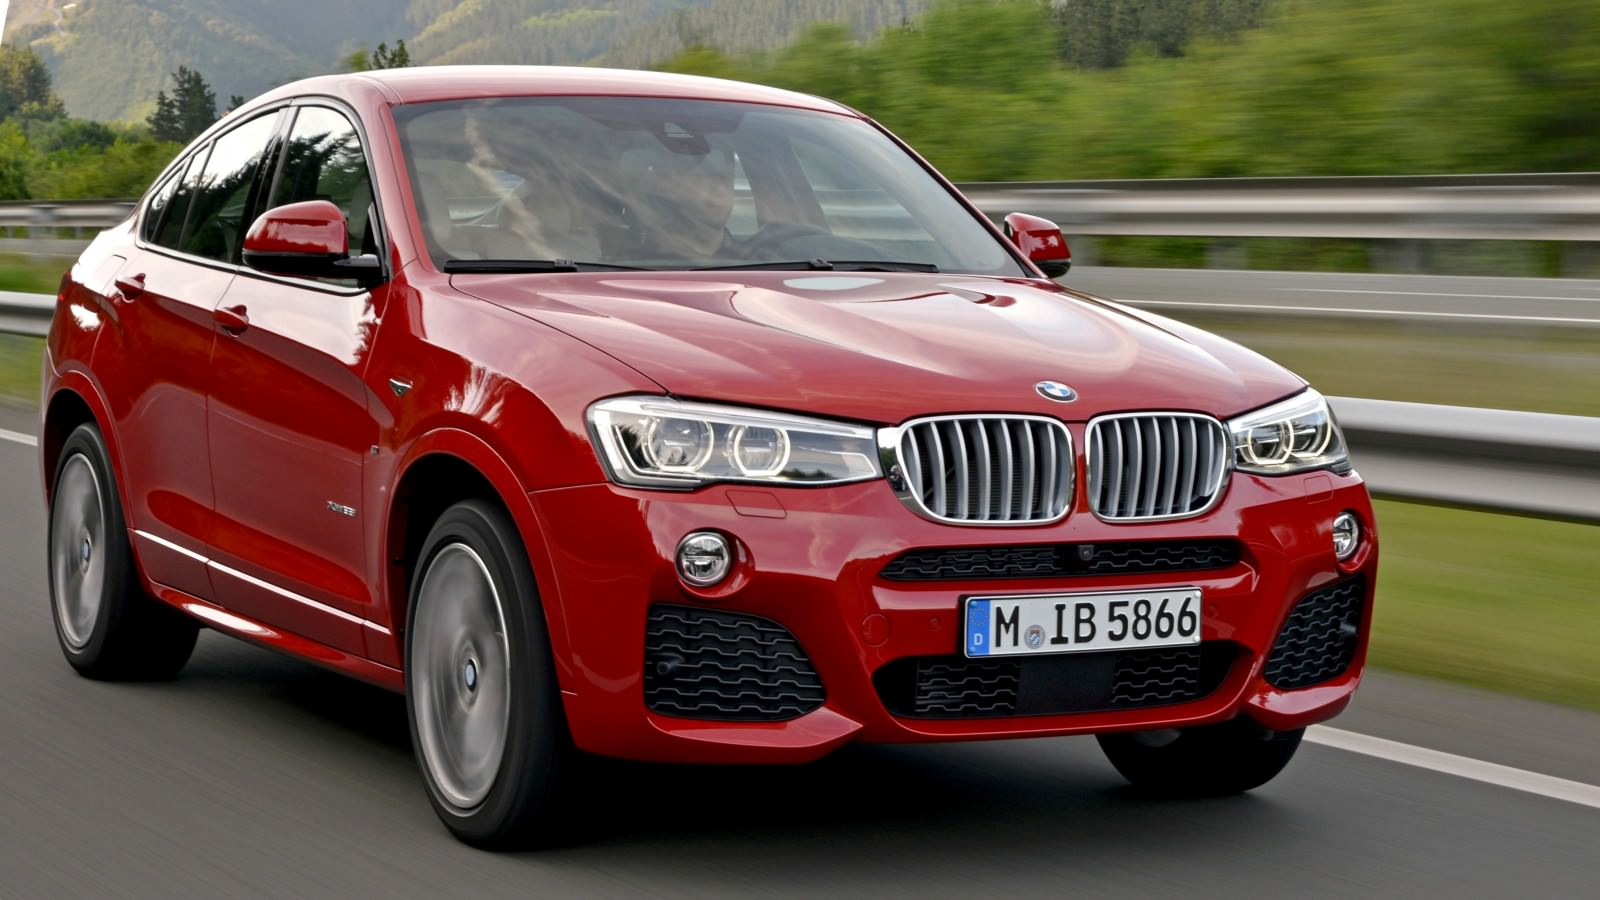 Update2 Debut Photos - 2015 BMW X4 Arriving Now to USA BMW Dealers 12